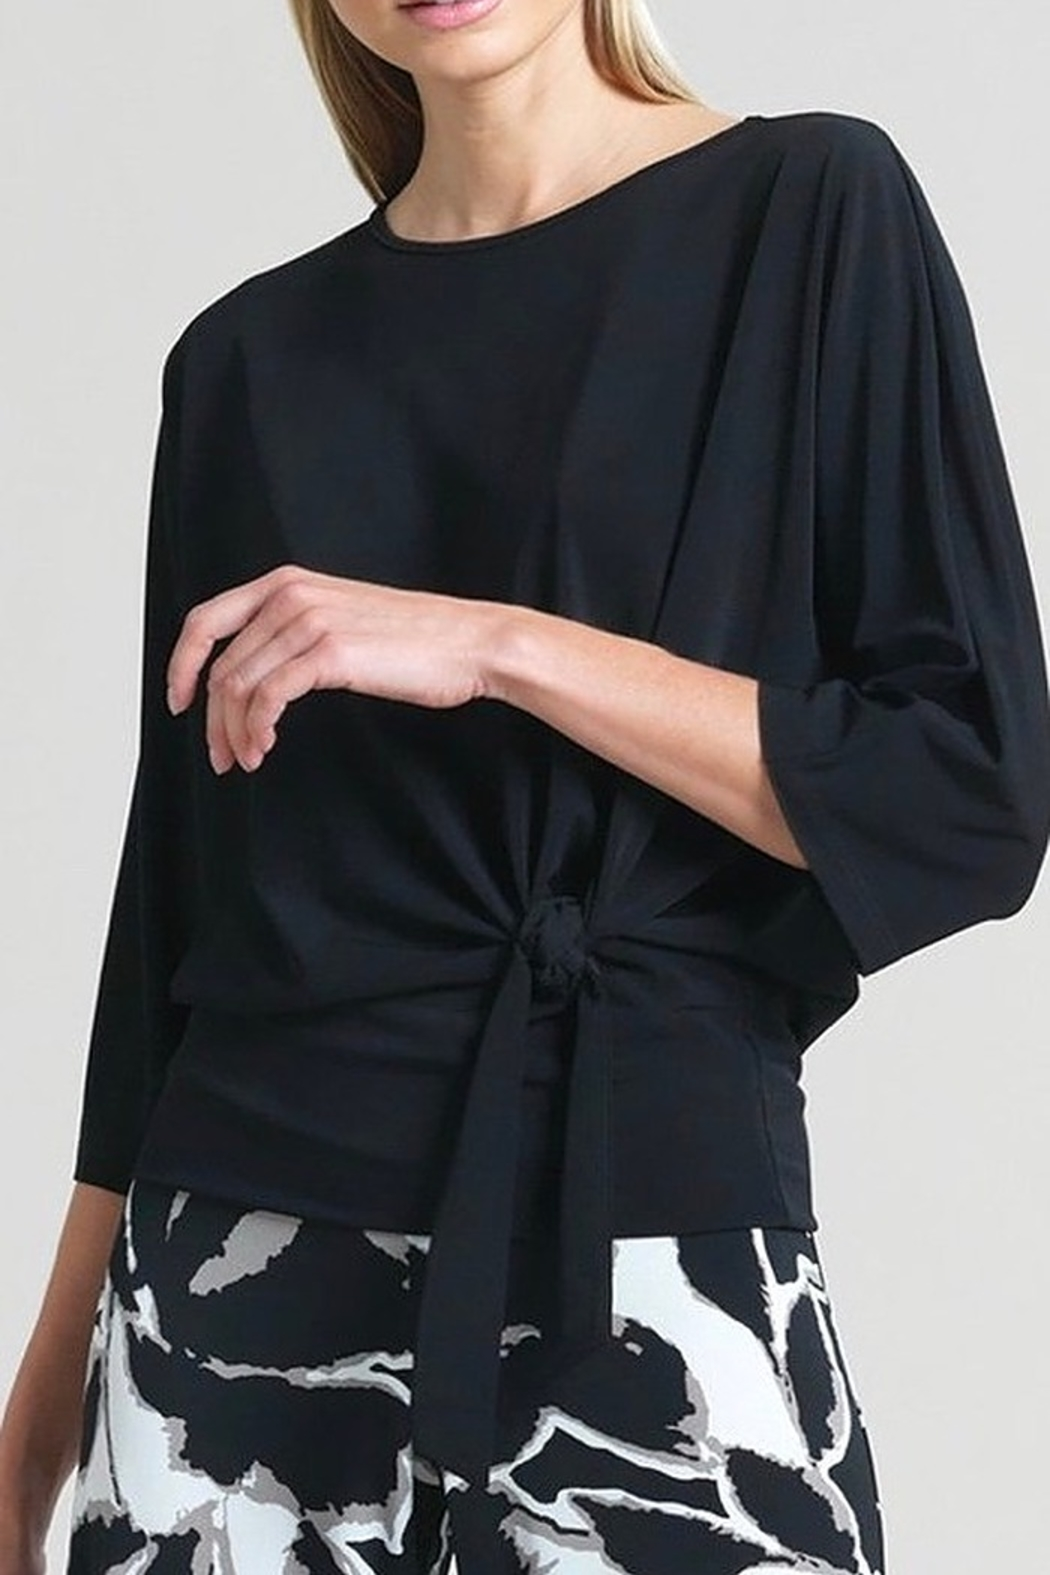 Clara Black soft knit twist front detail tunic - Main Image